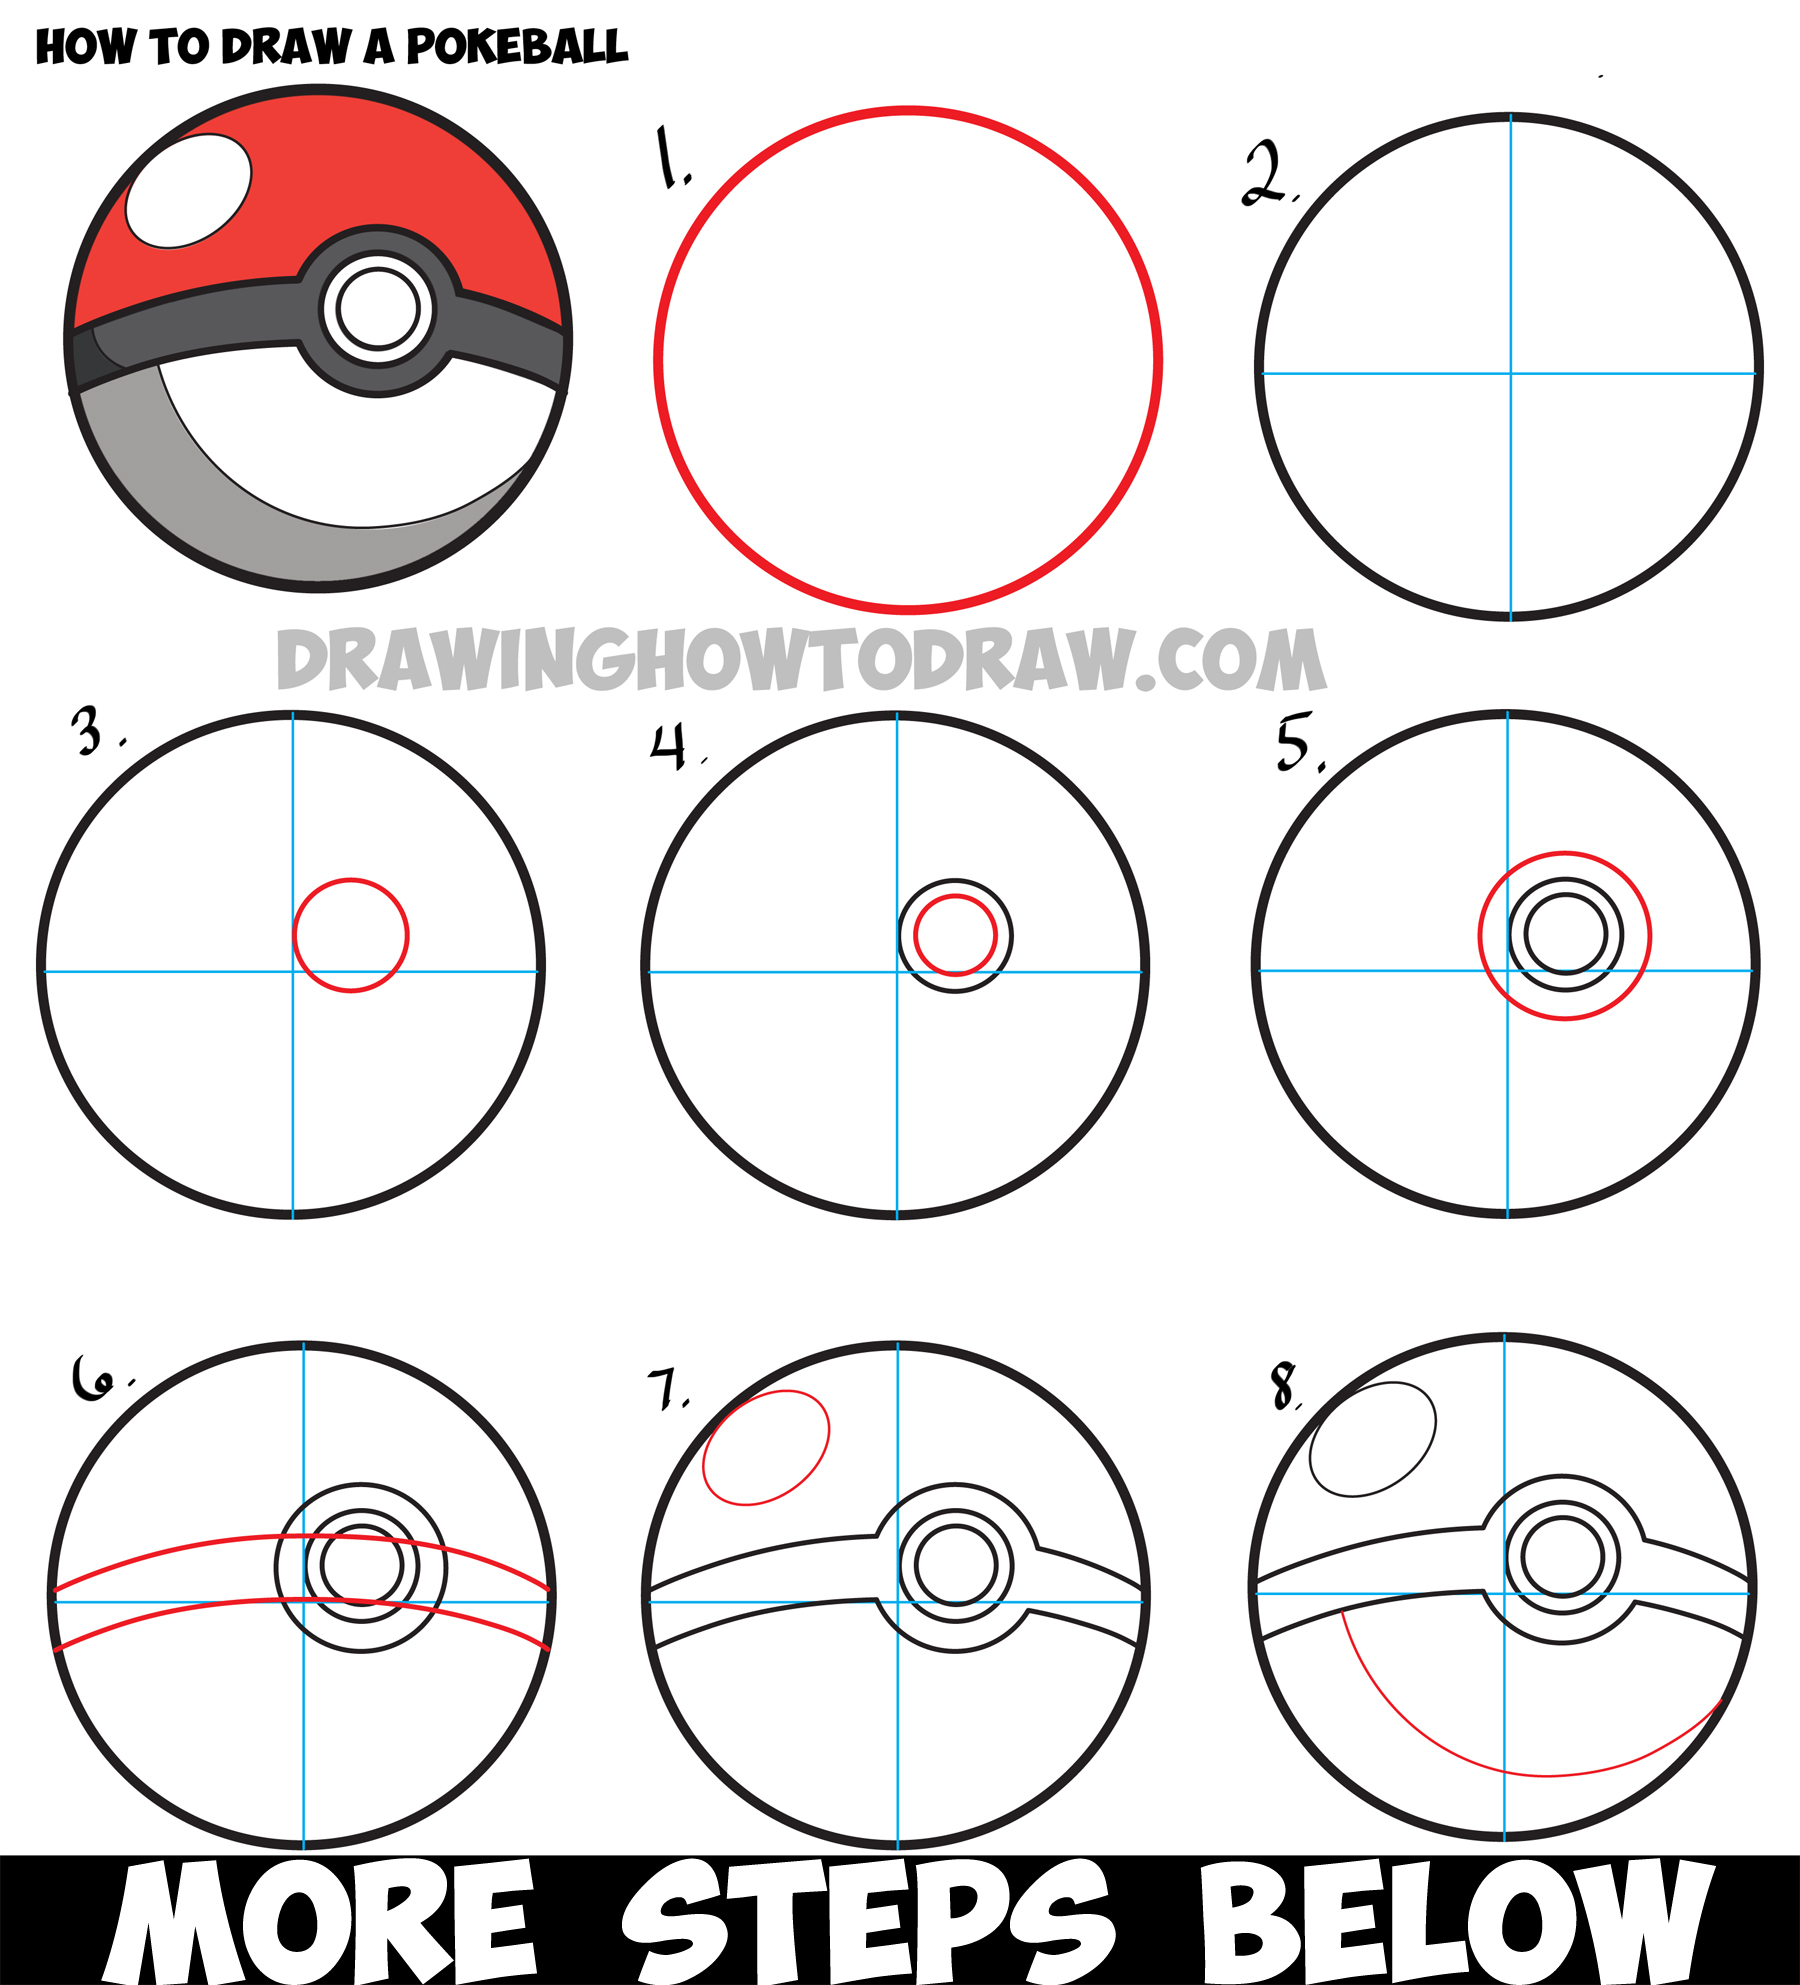 Drawn pokeball doodle From by Pokeball Easy to